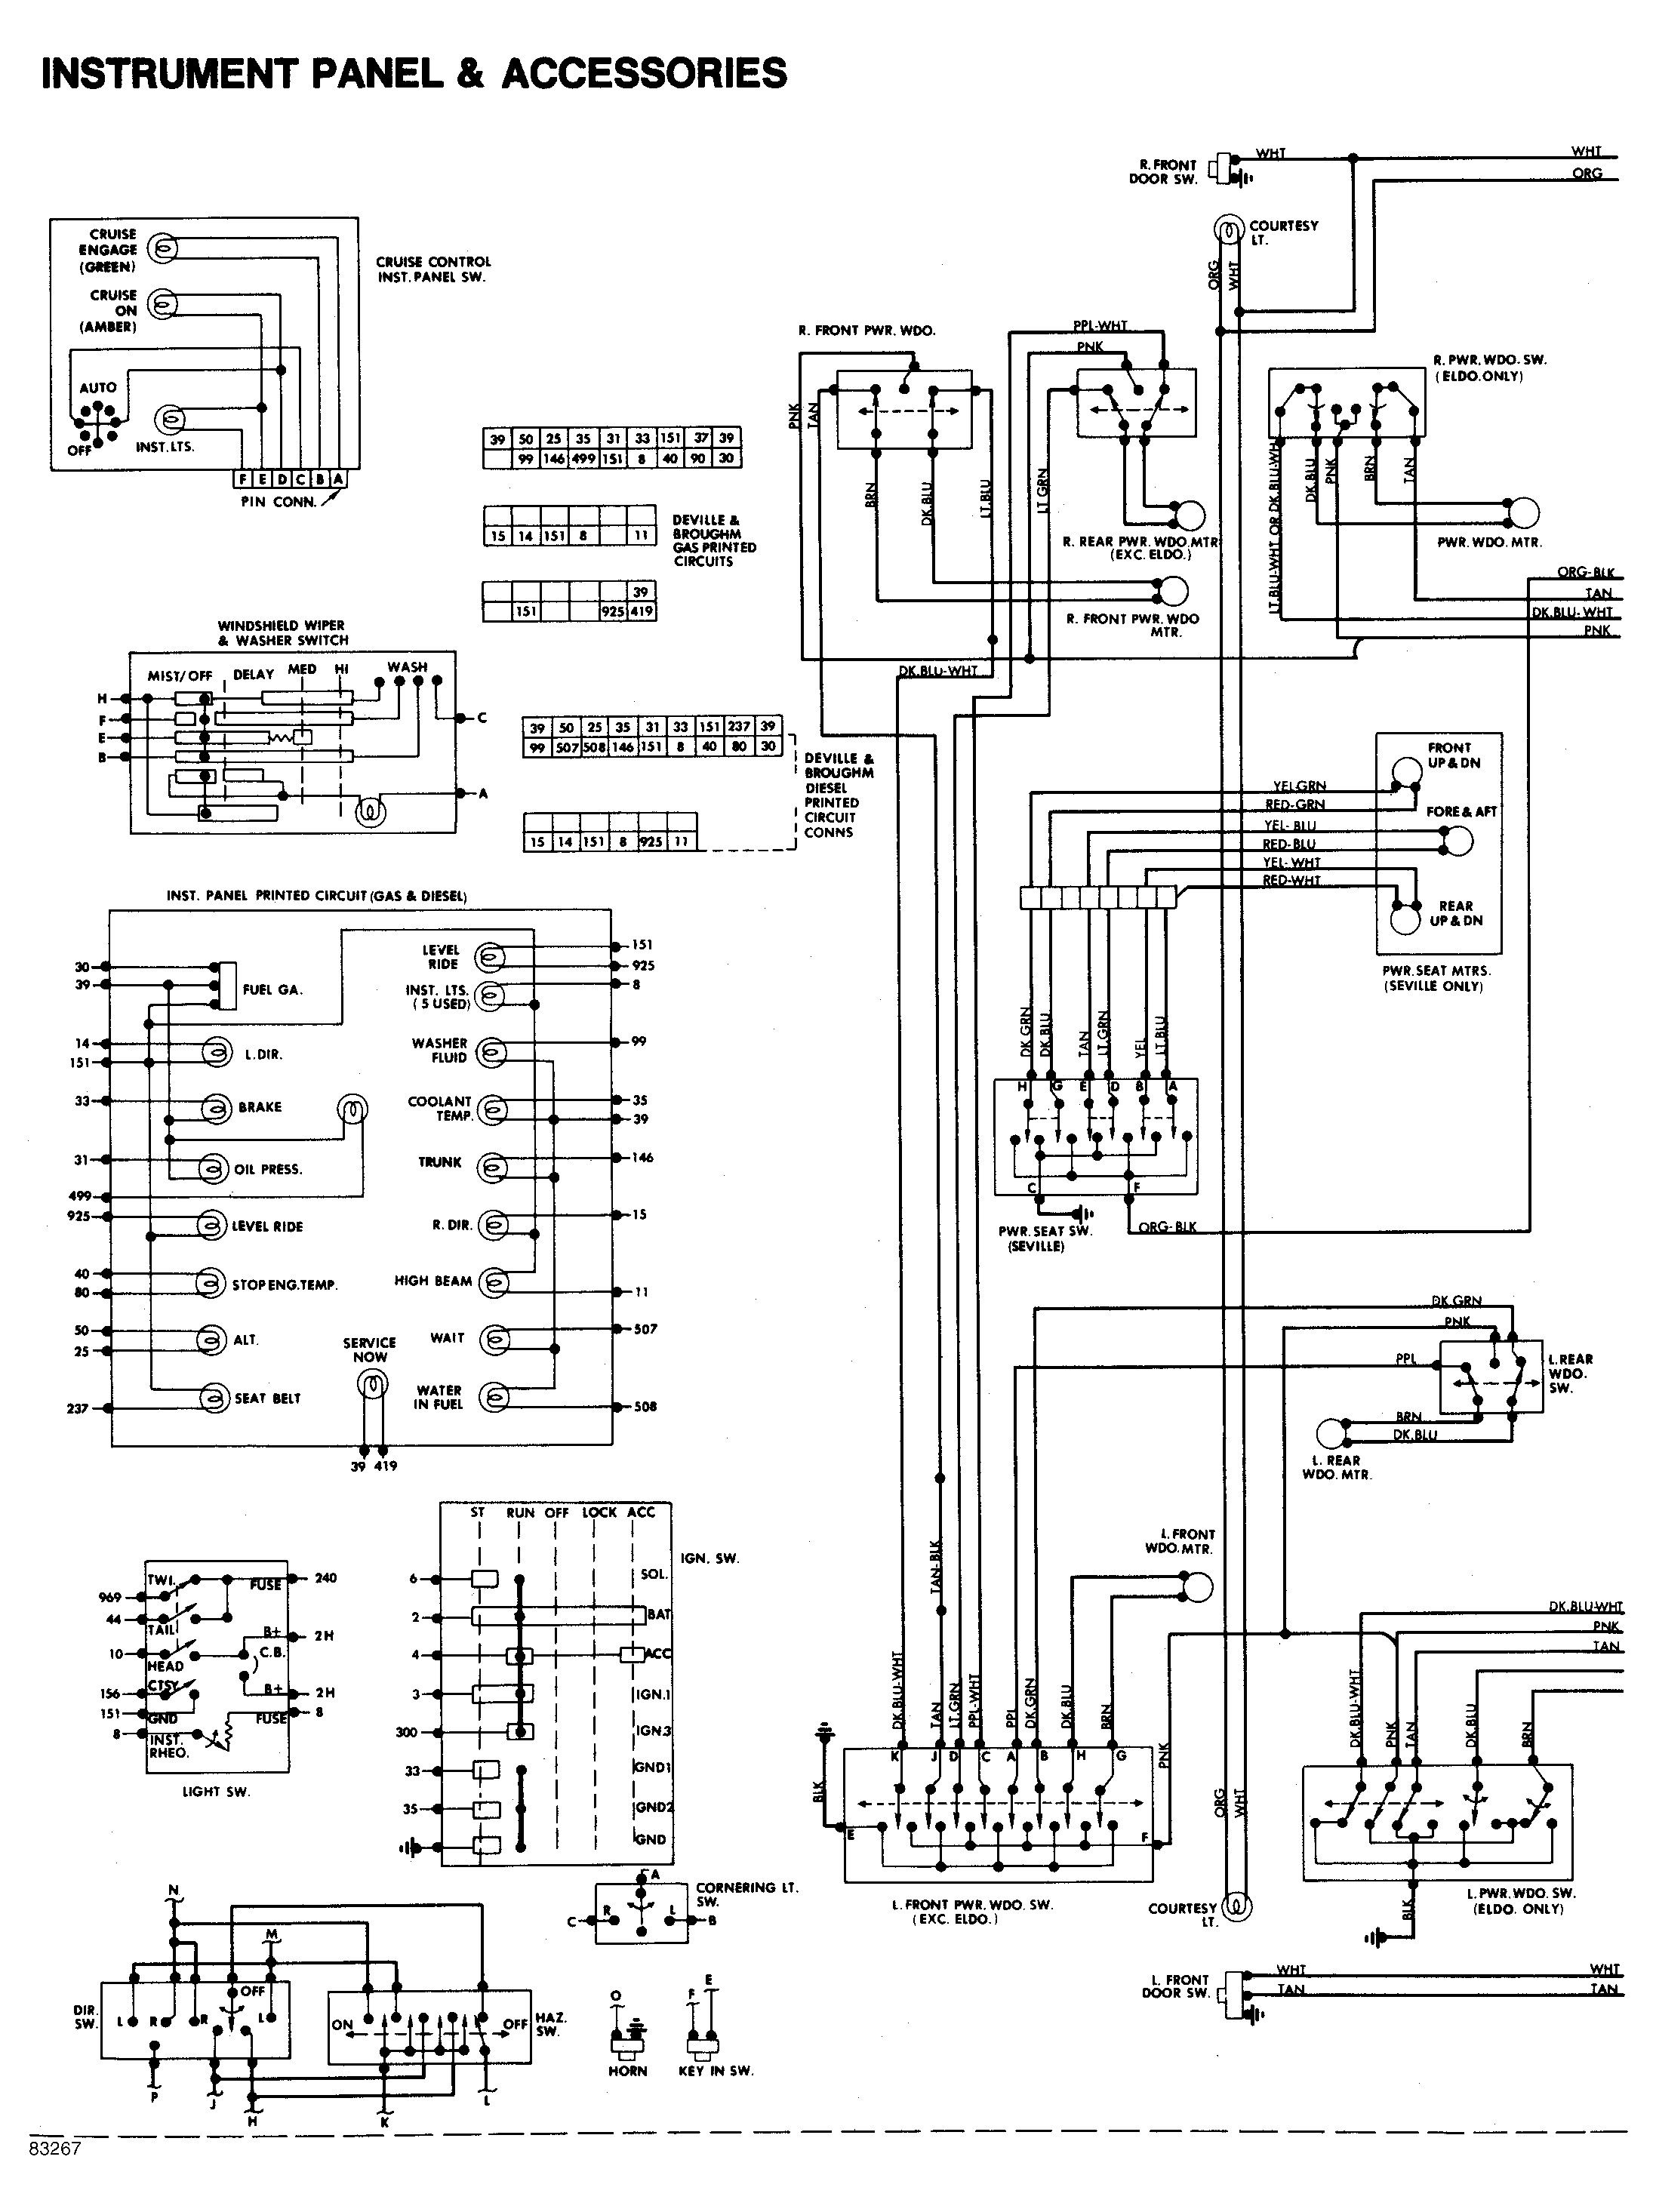 hight resolution of 74 international wiring diagram wiring diagram datasource 1974 international harvester wiring diagram wiring diagram compilation 74